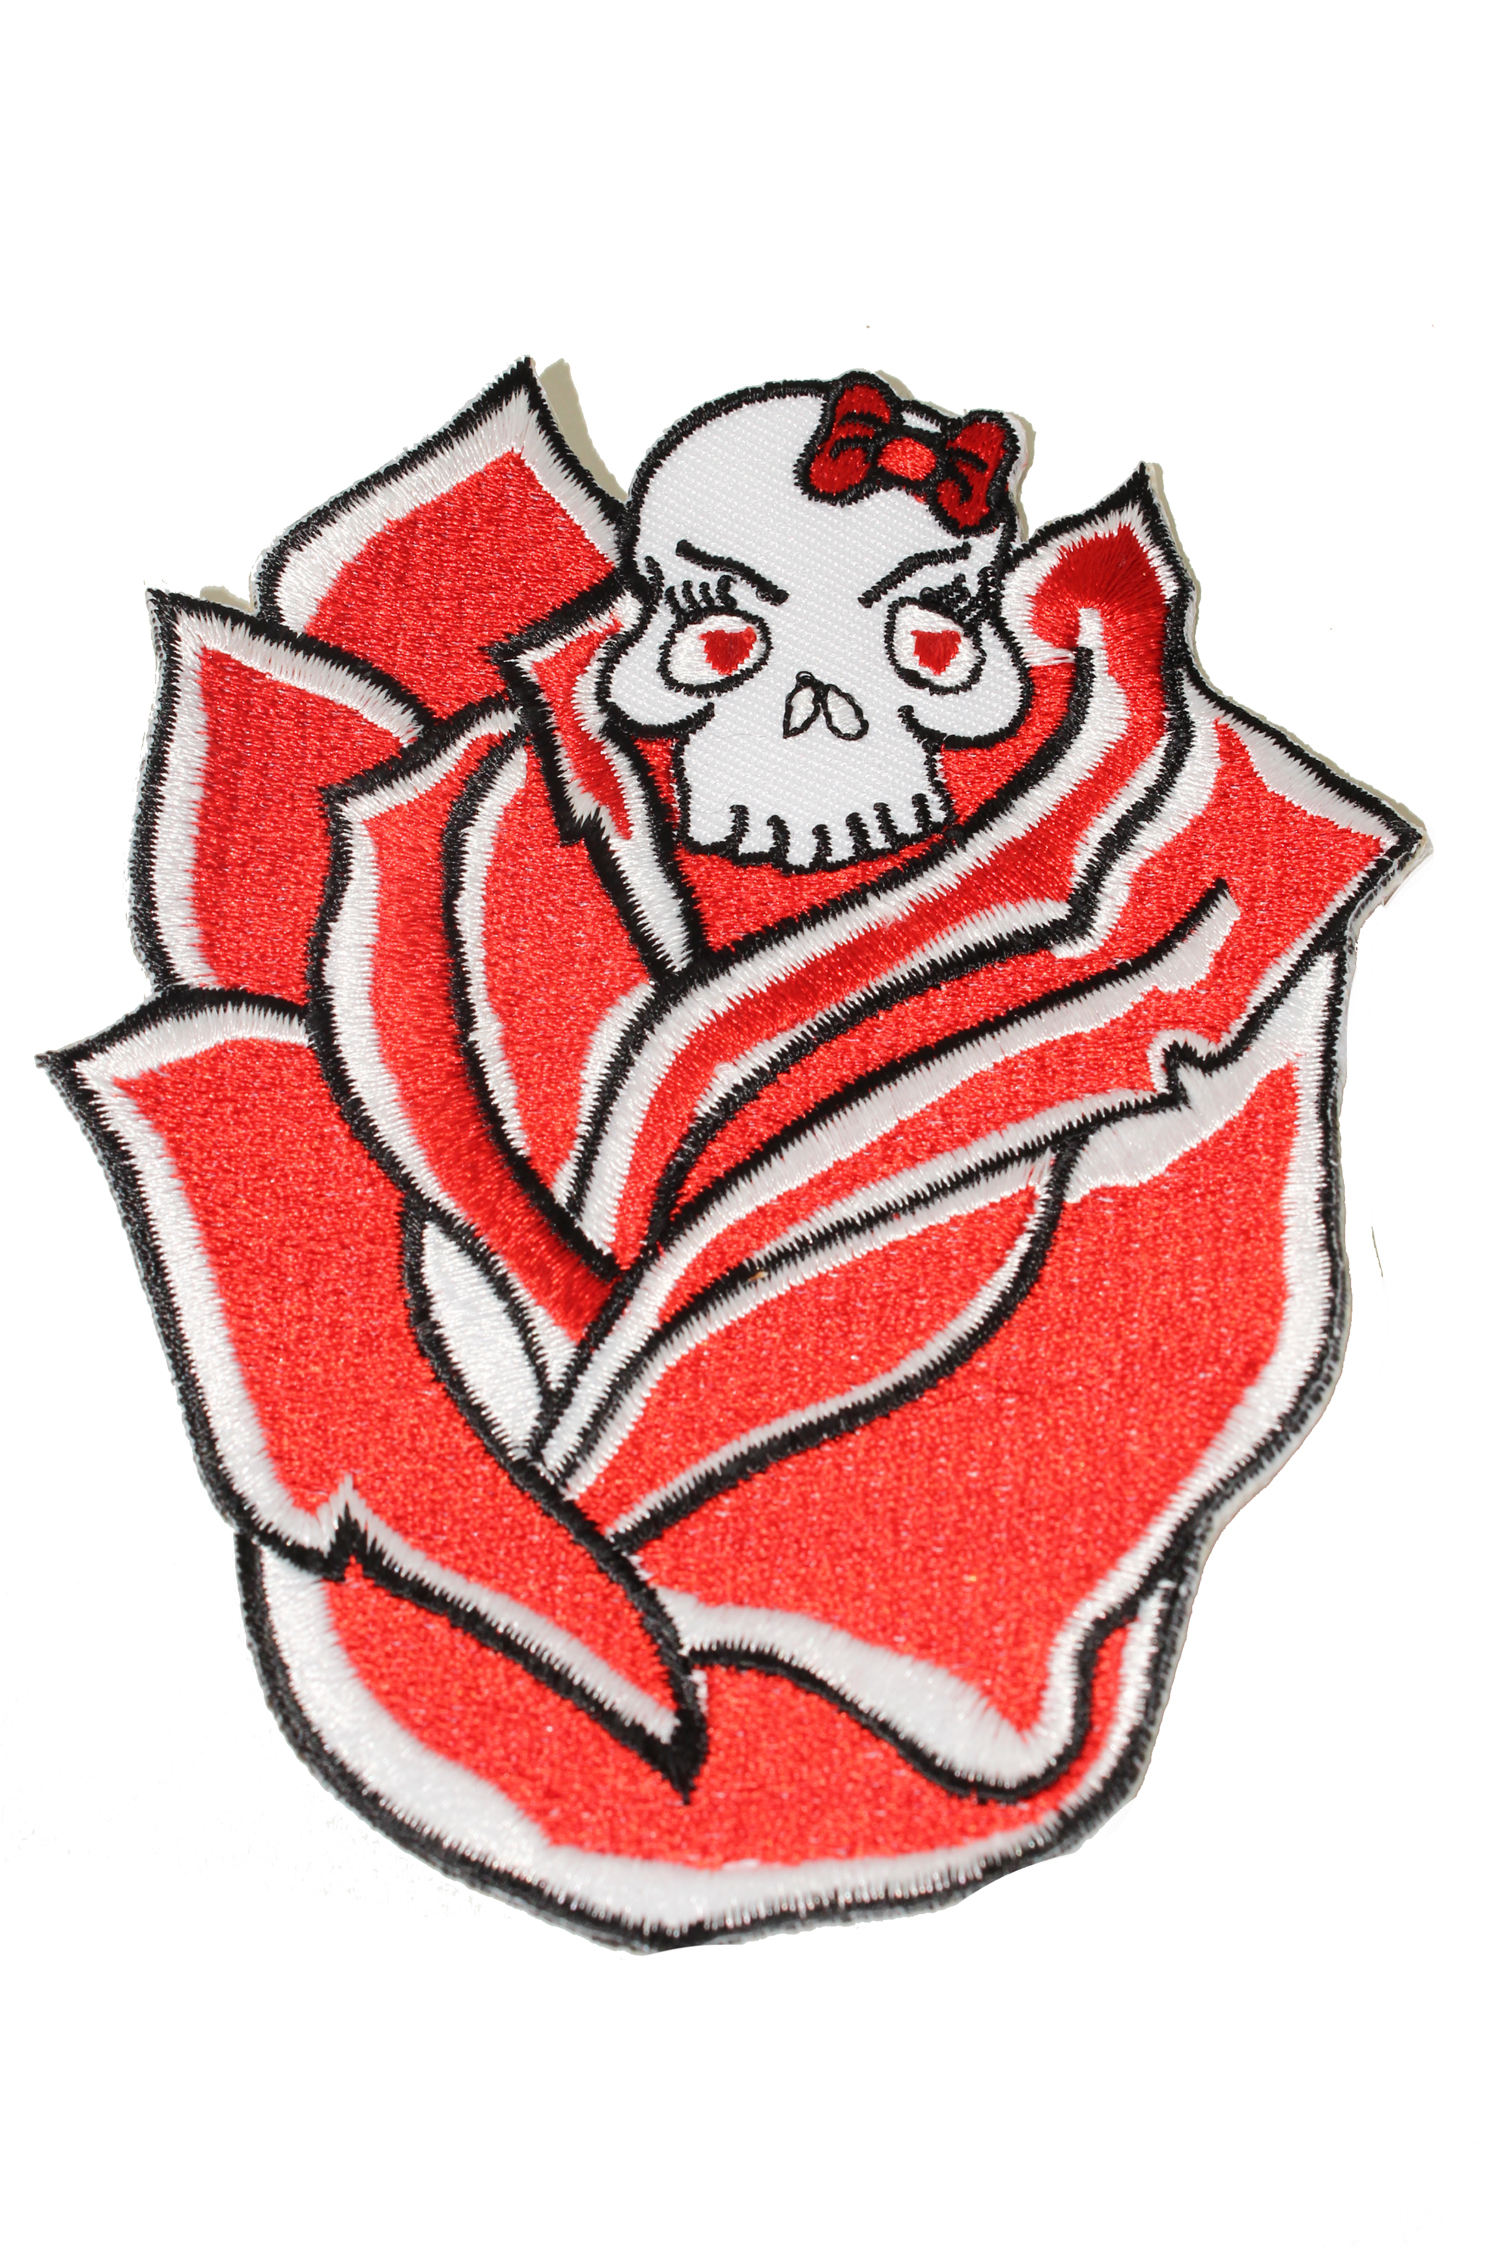 girlie Flower Skull punk rock Totenkopf Rose Rockabilly Patch Aufnäher